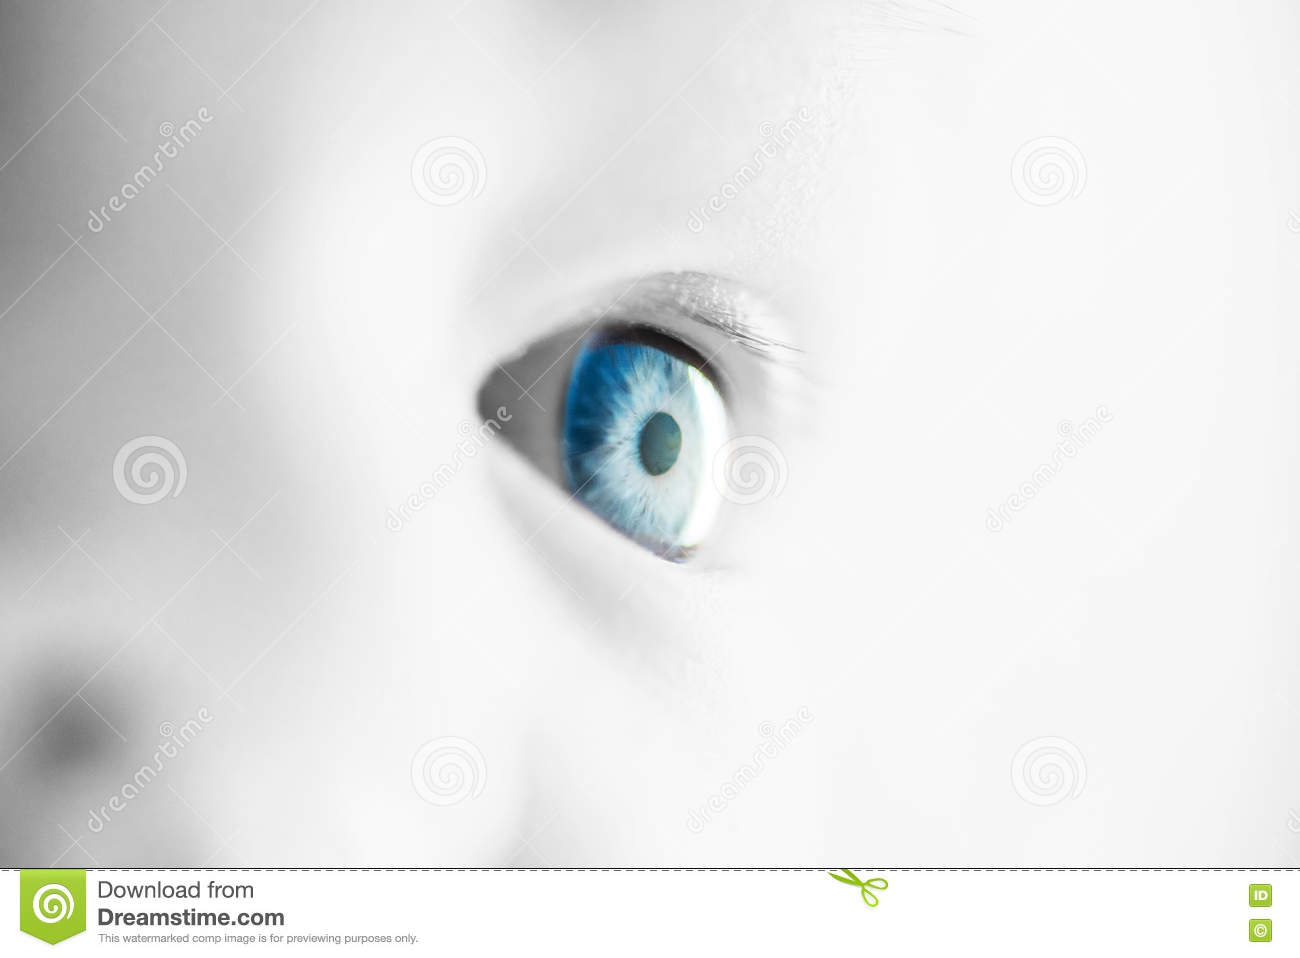 Closeup image of infant eye, selective color